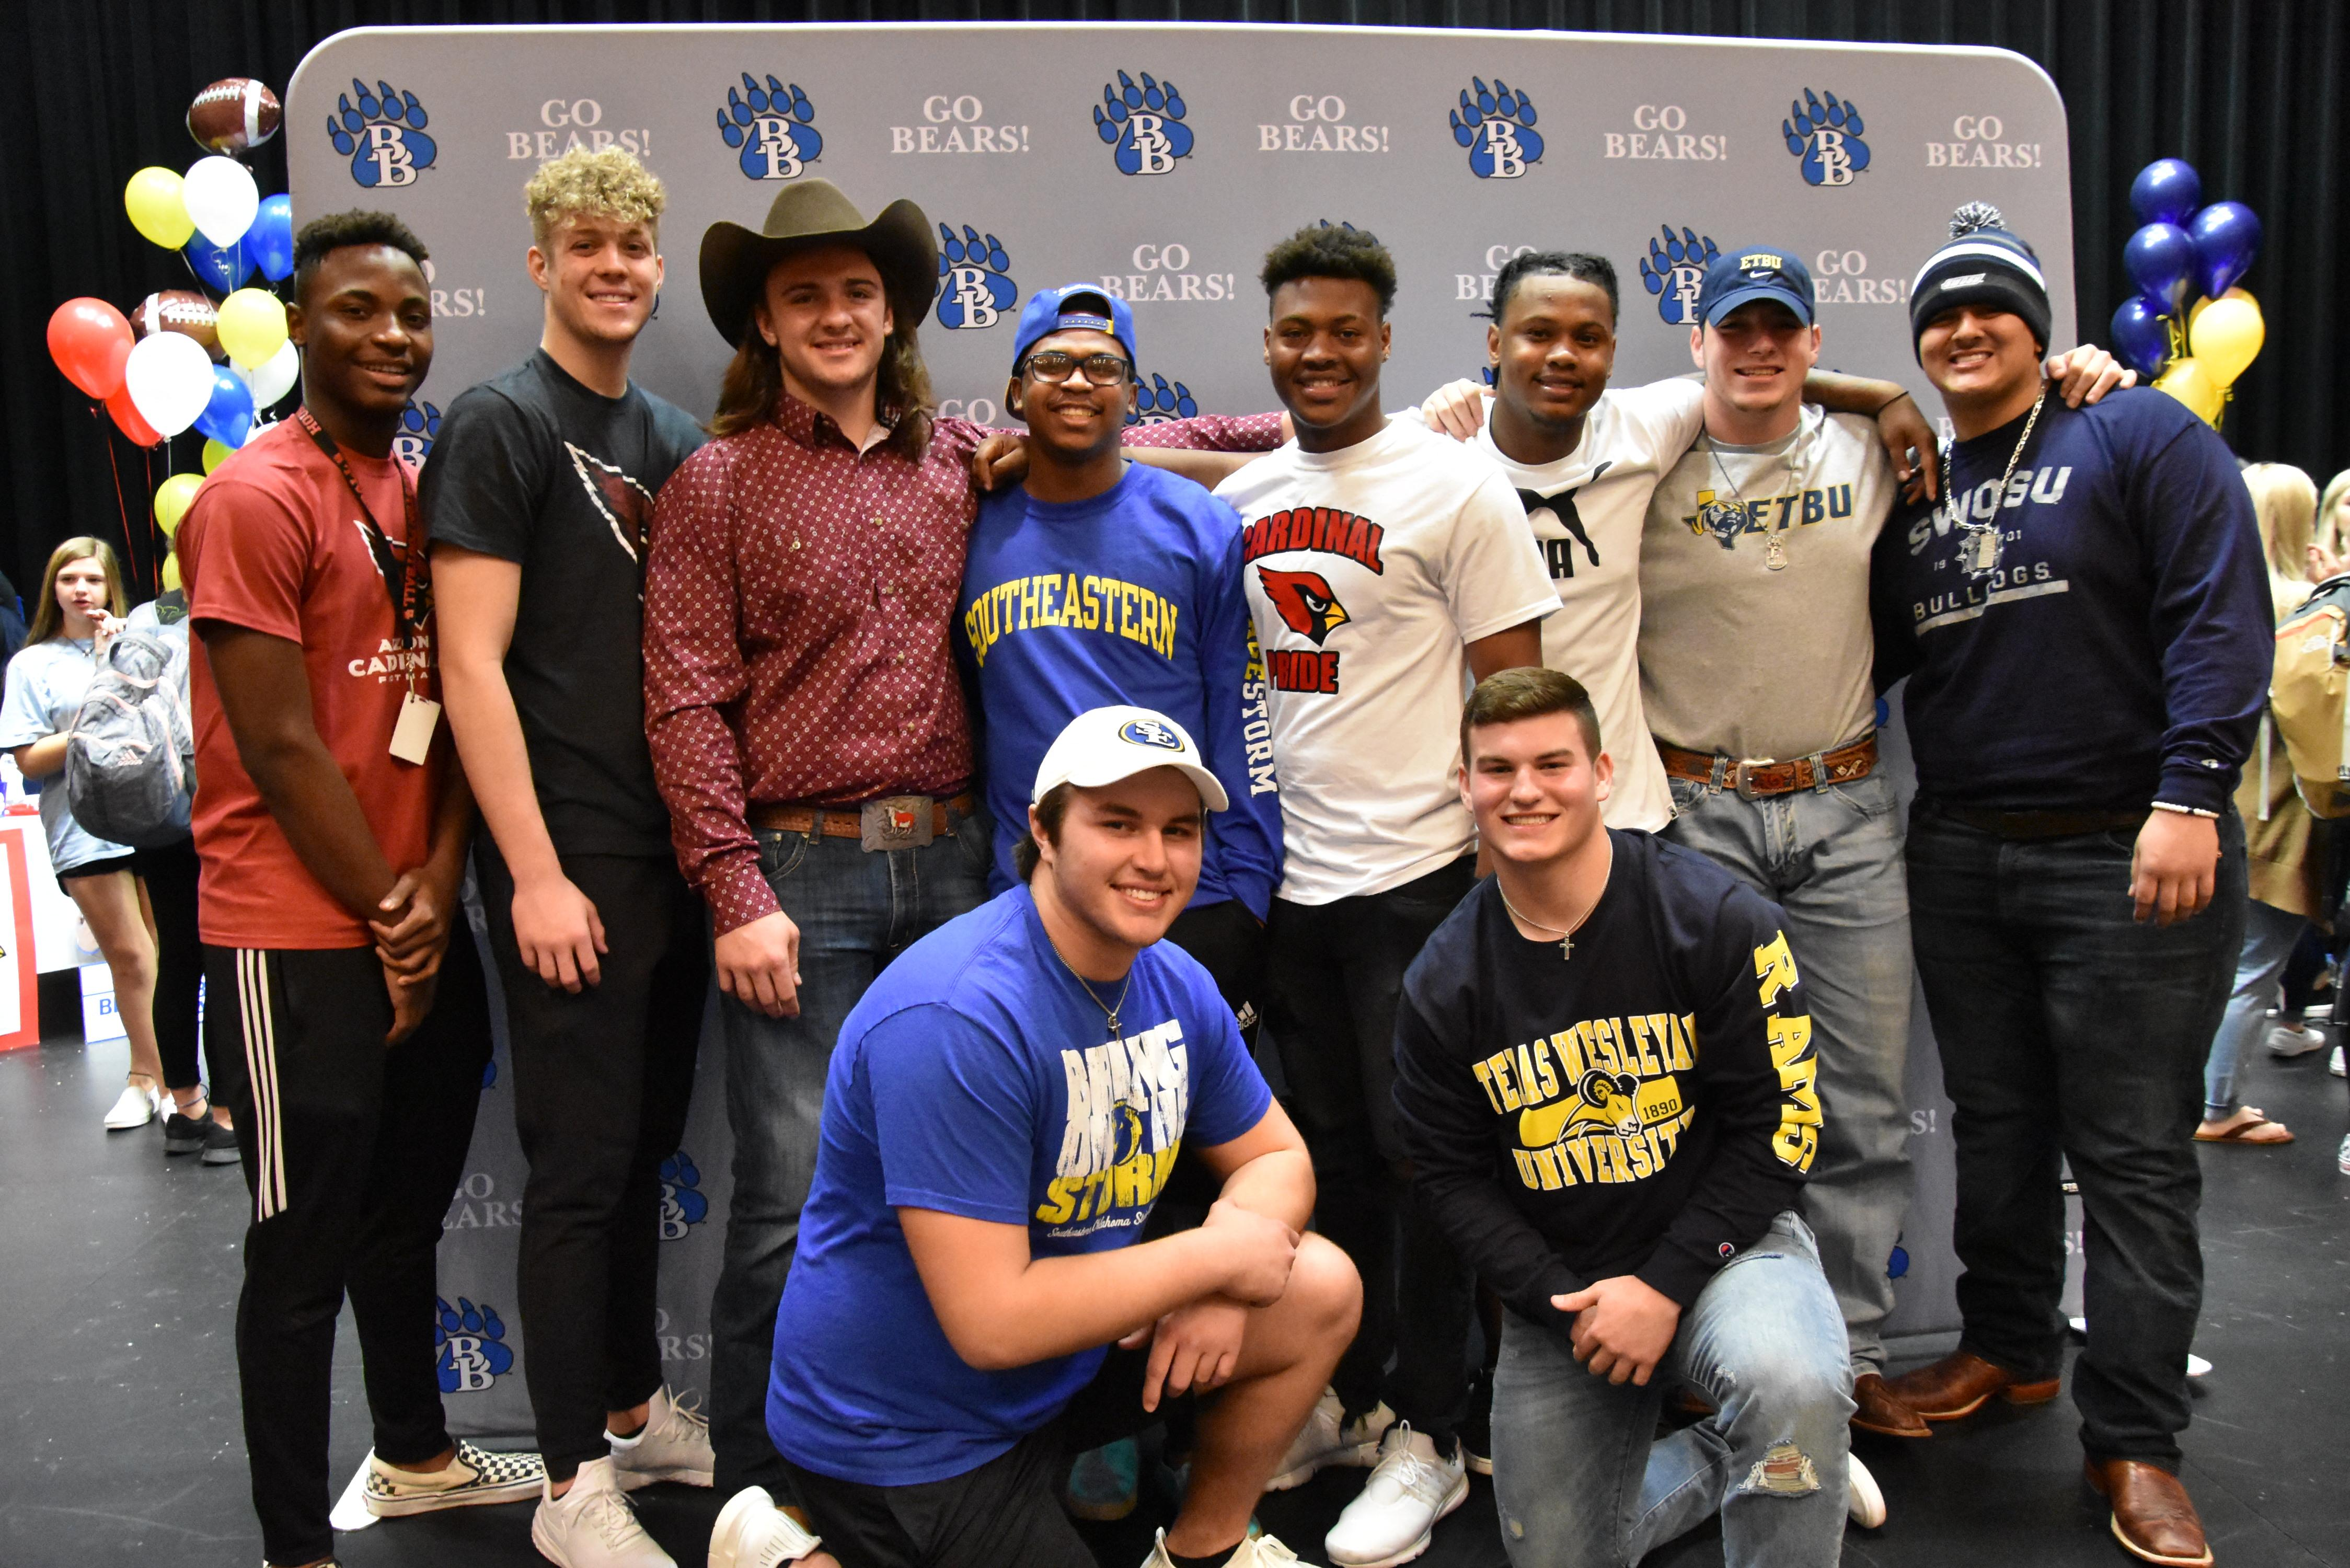 Ten Brewer Bears signed to play football on Feb. 6.